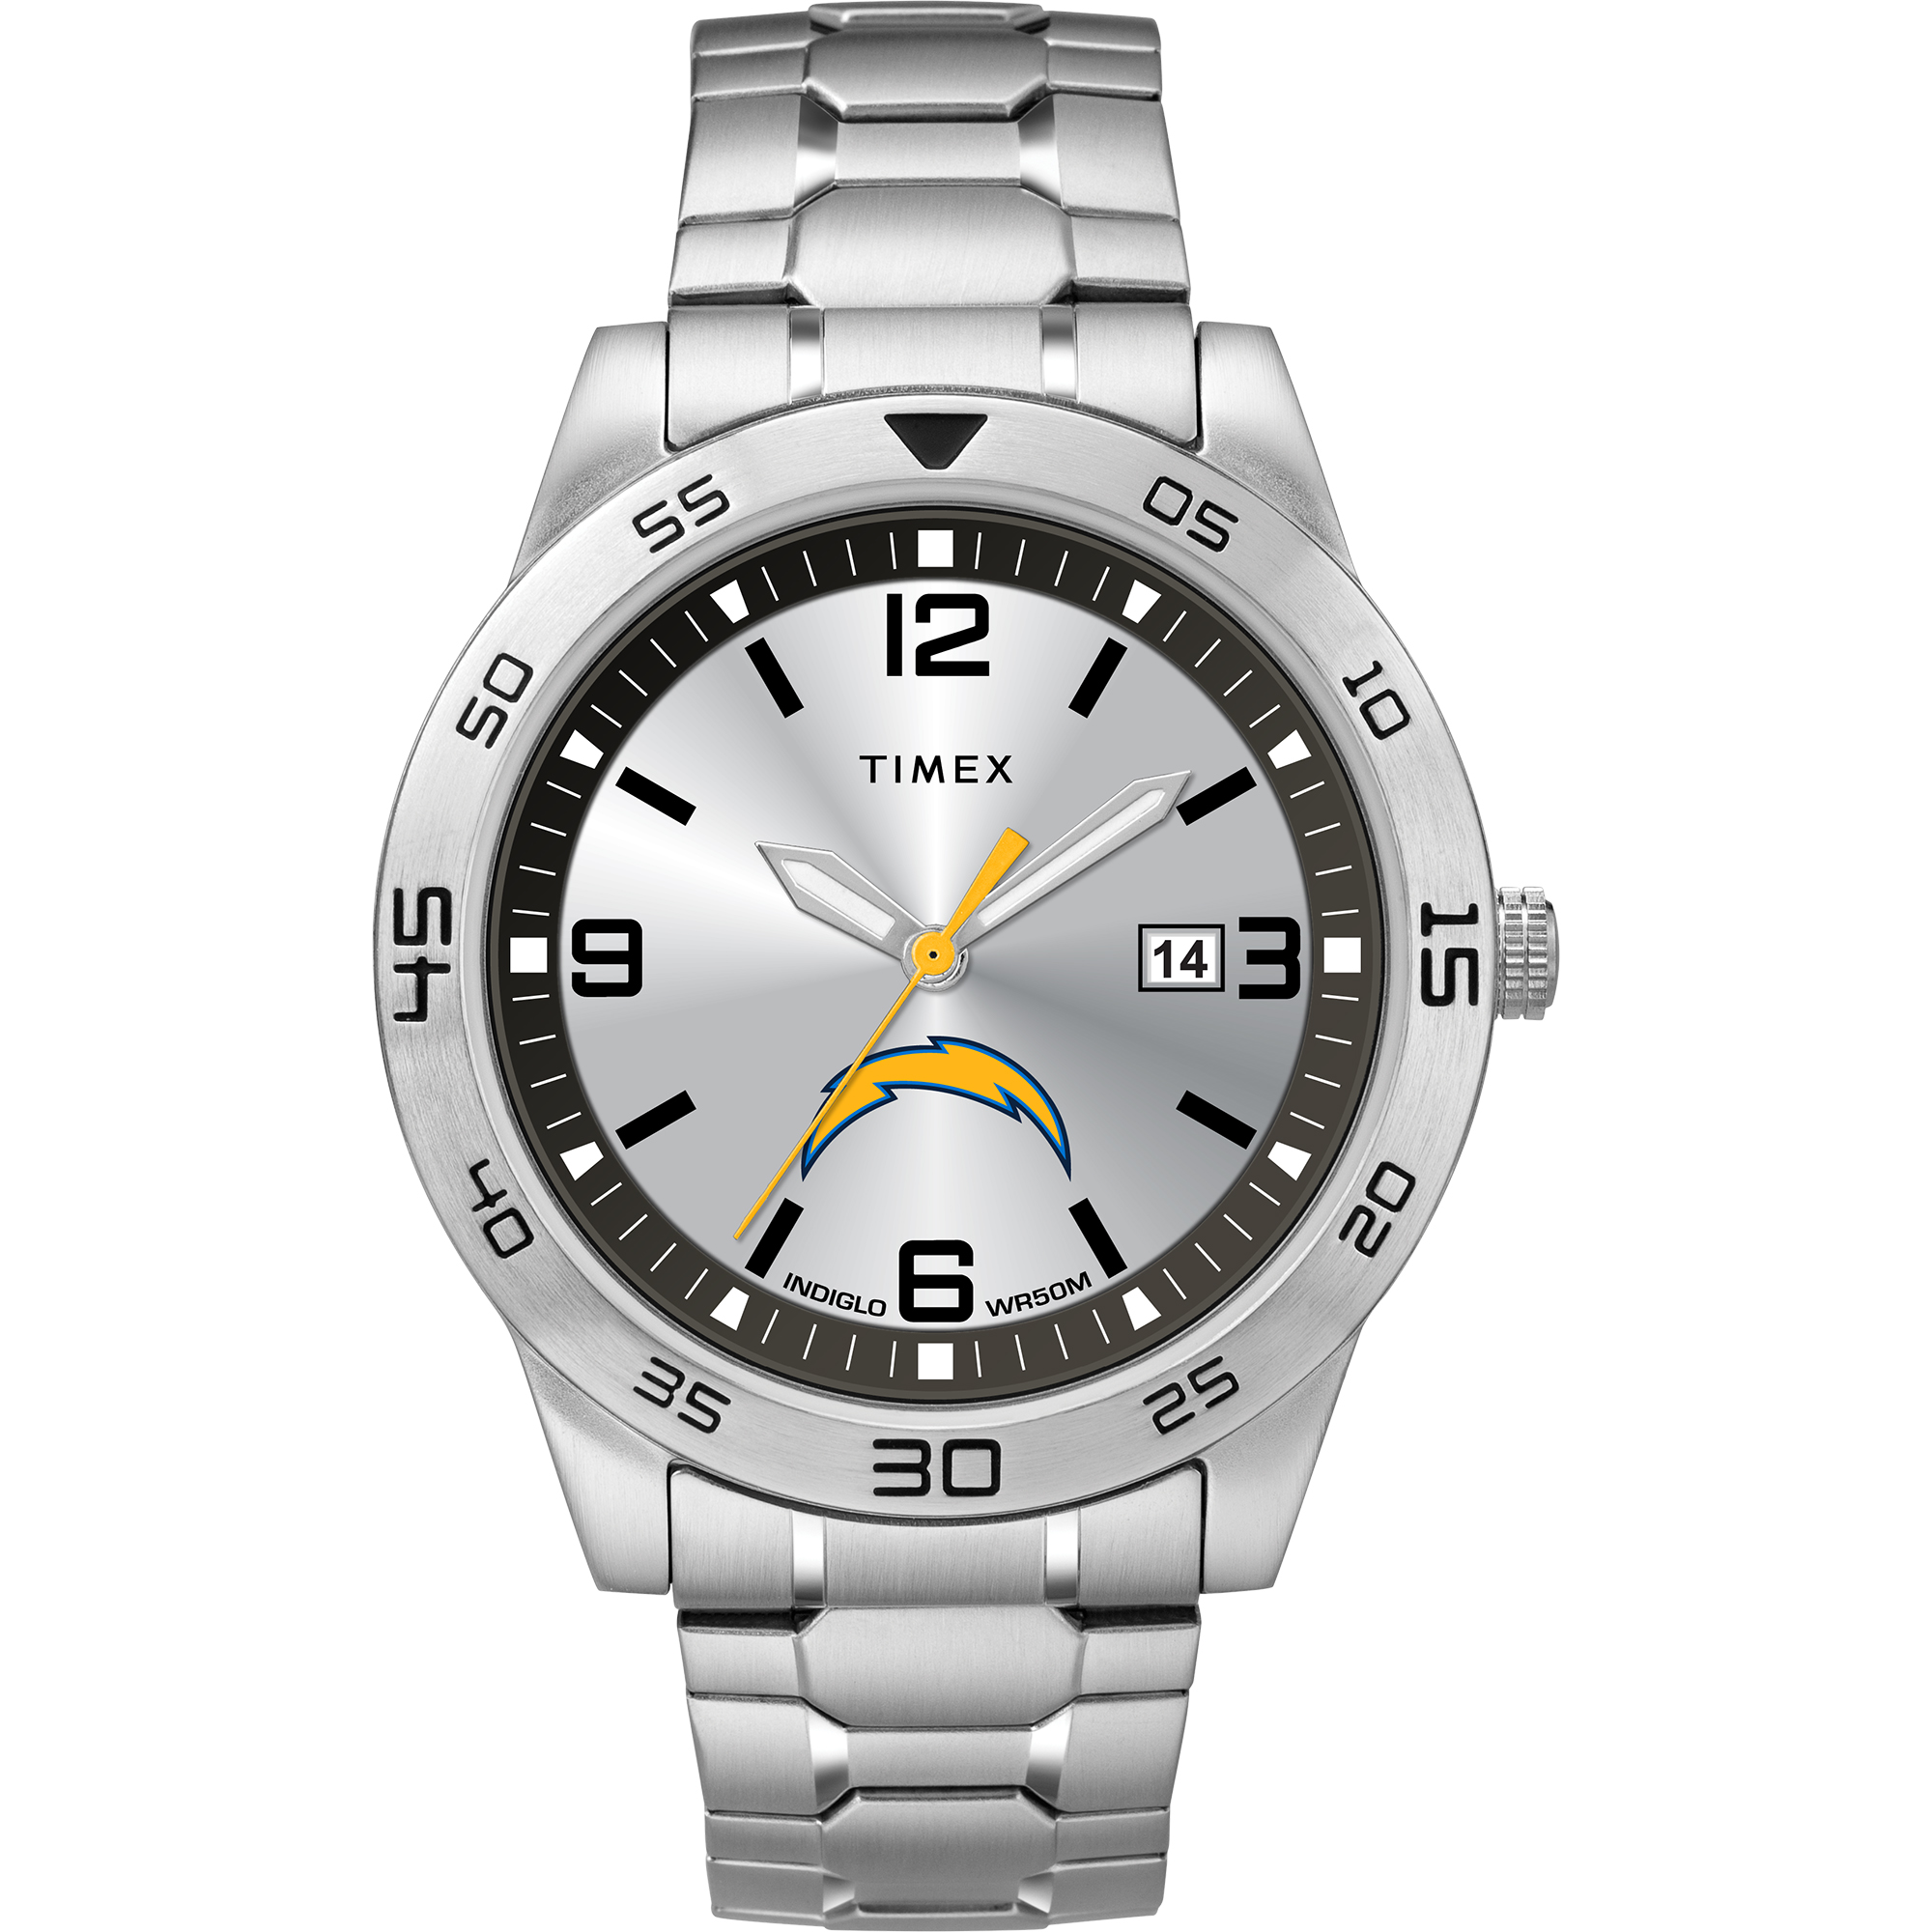 Timex - NFL Tribute Collection Citation Men's Watch, Los Angeles Chargers